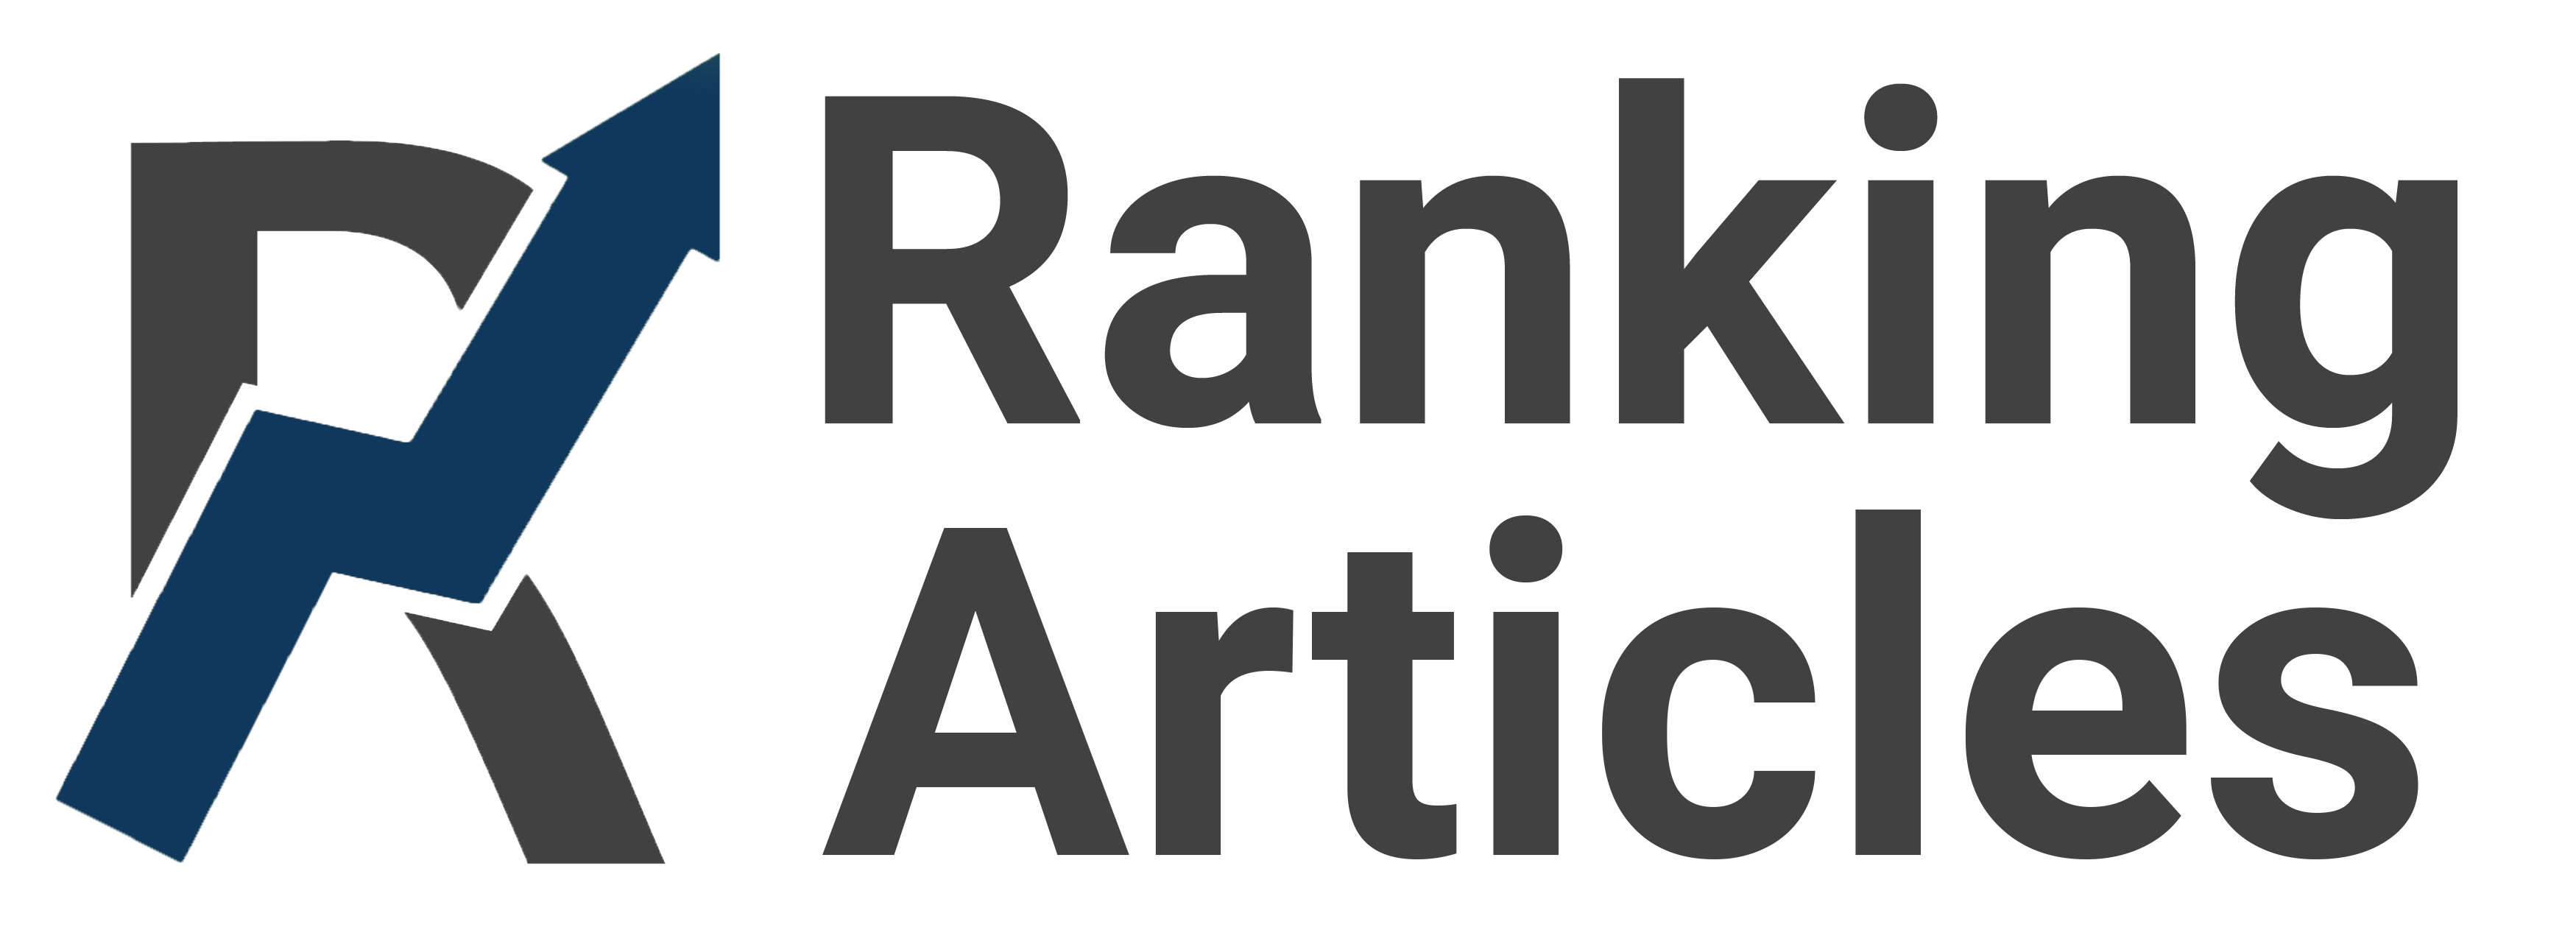 Ranking-Articles